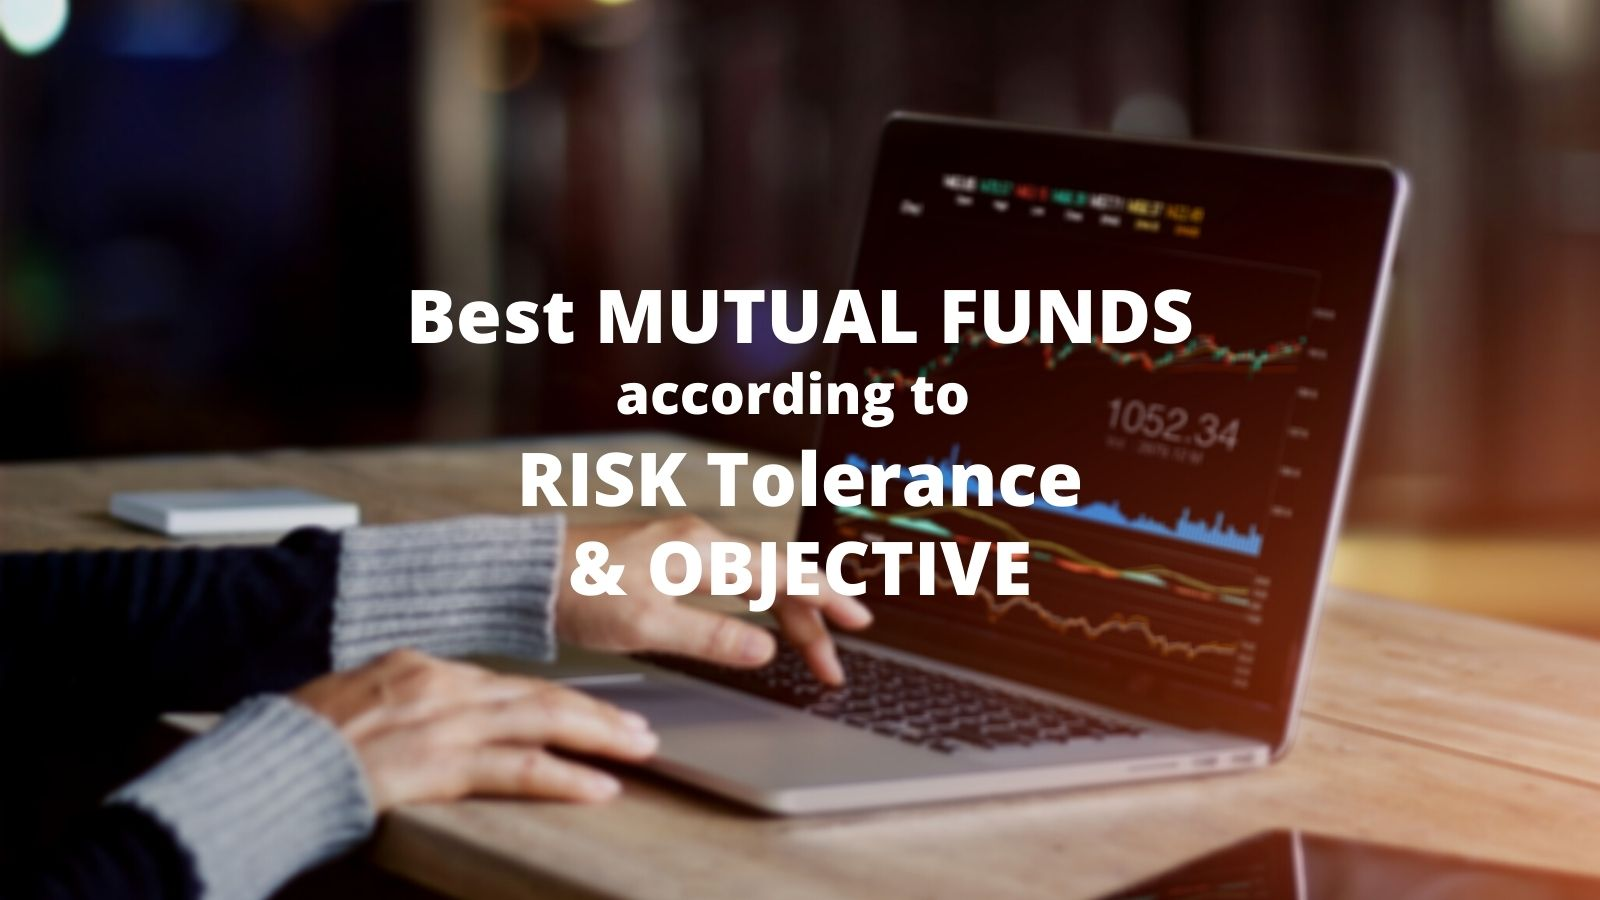 best mutual funds according to risk tolerance and objective